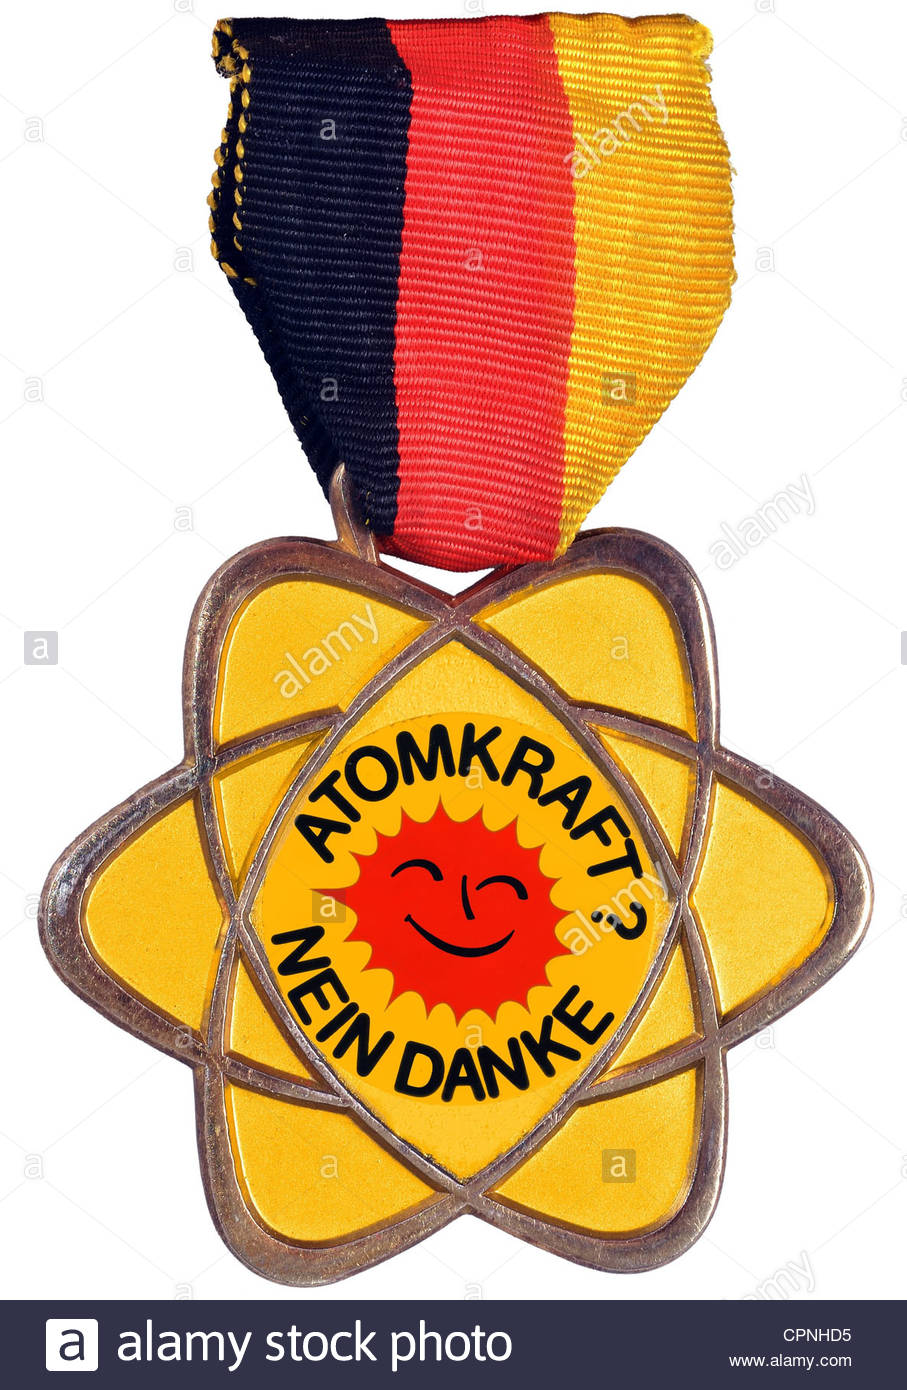 Symbol Image, Phasing Out Nuclear Energy, Pro Nuclear Medal From.